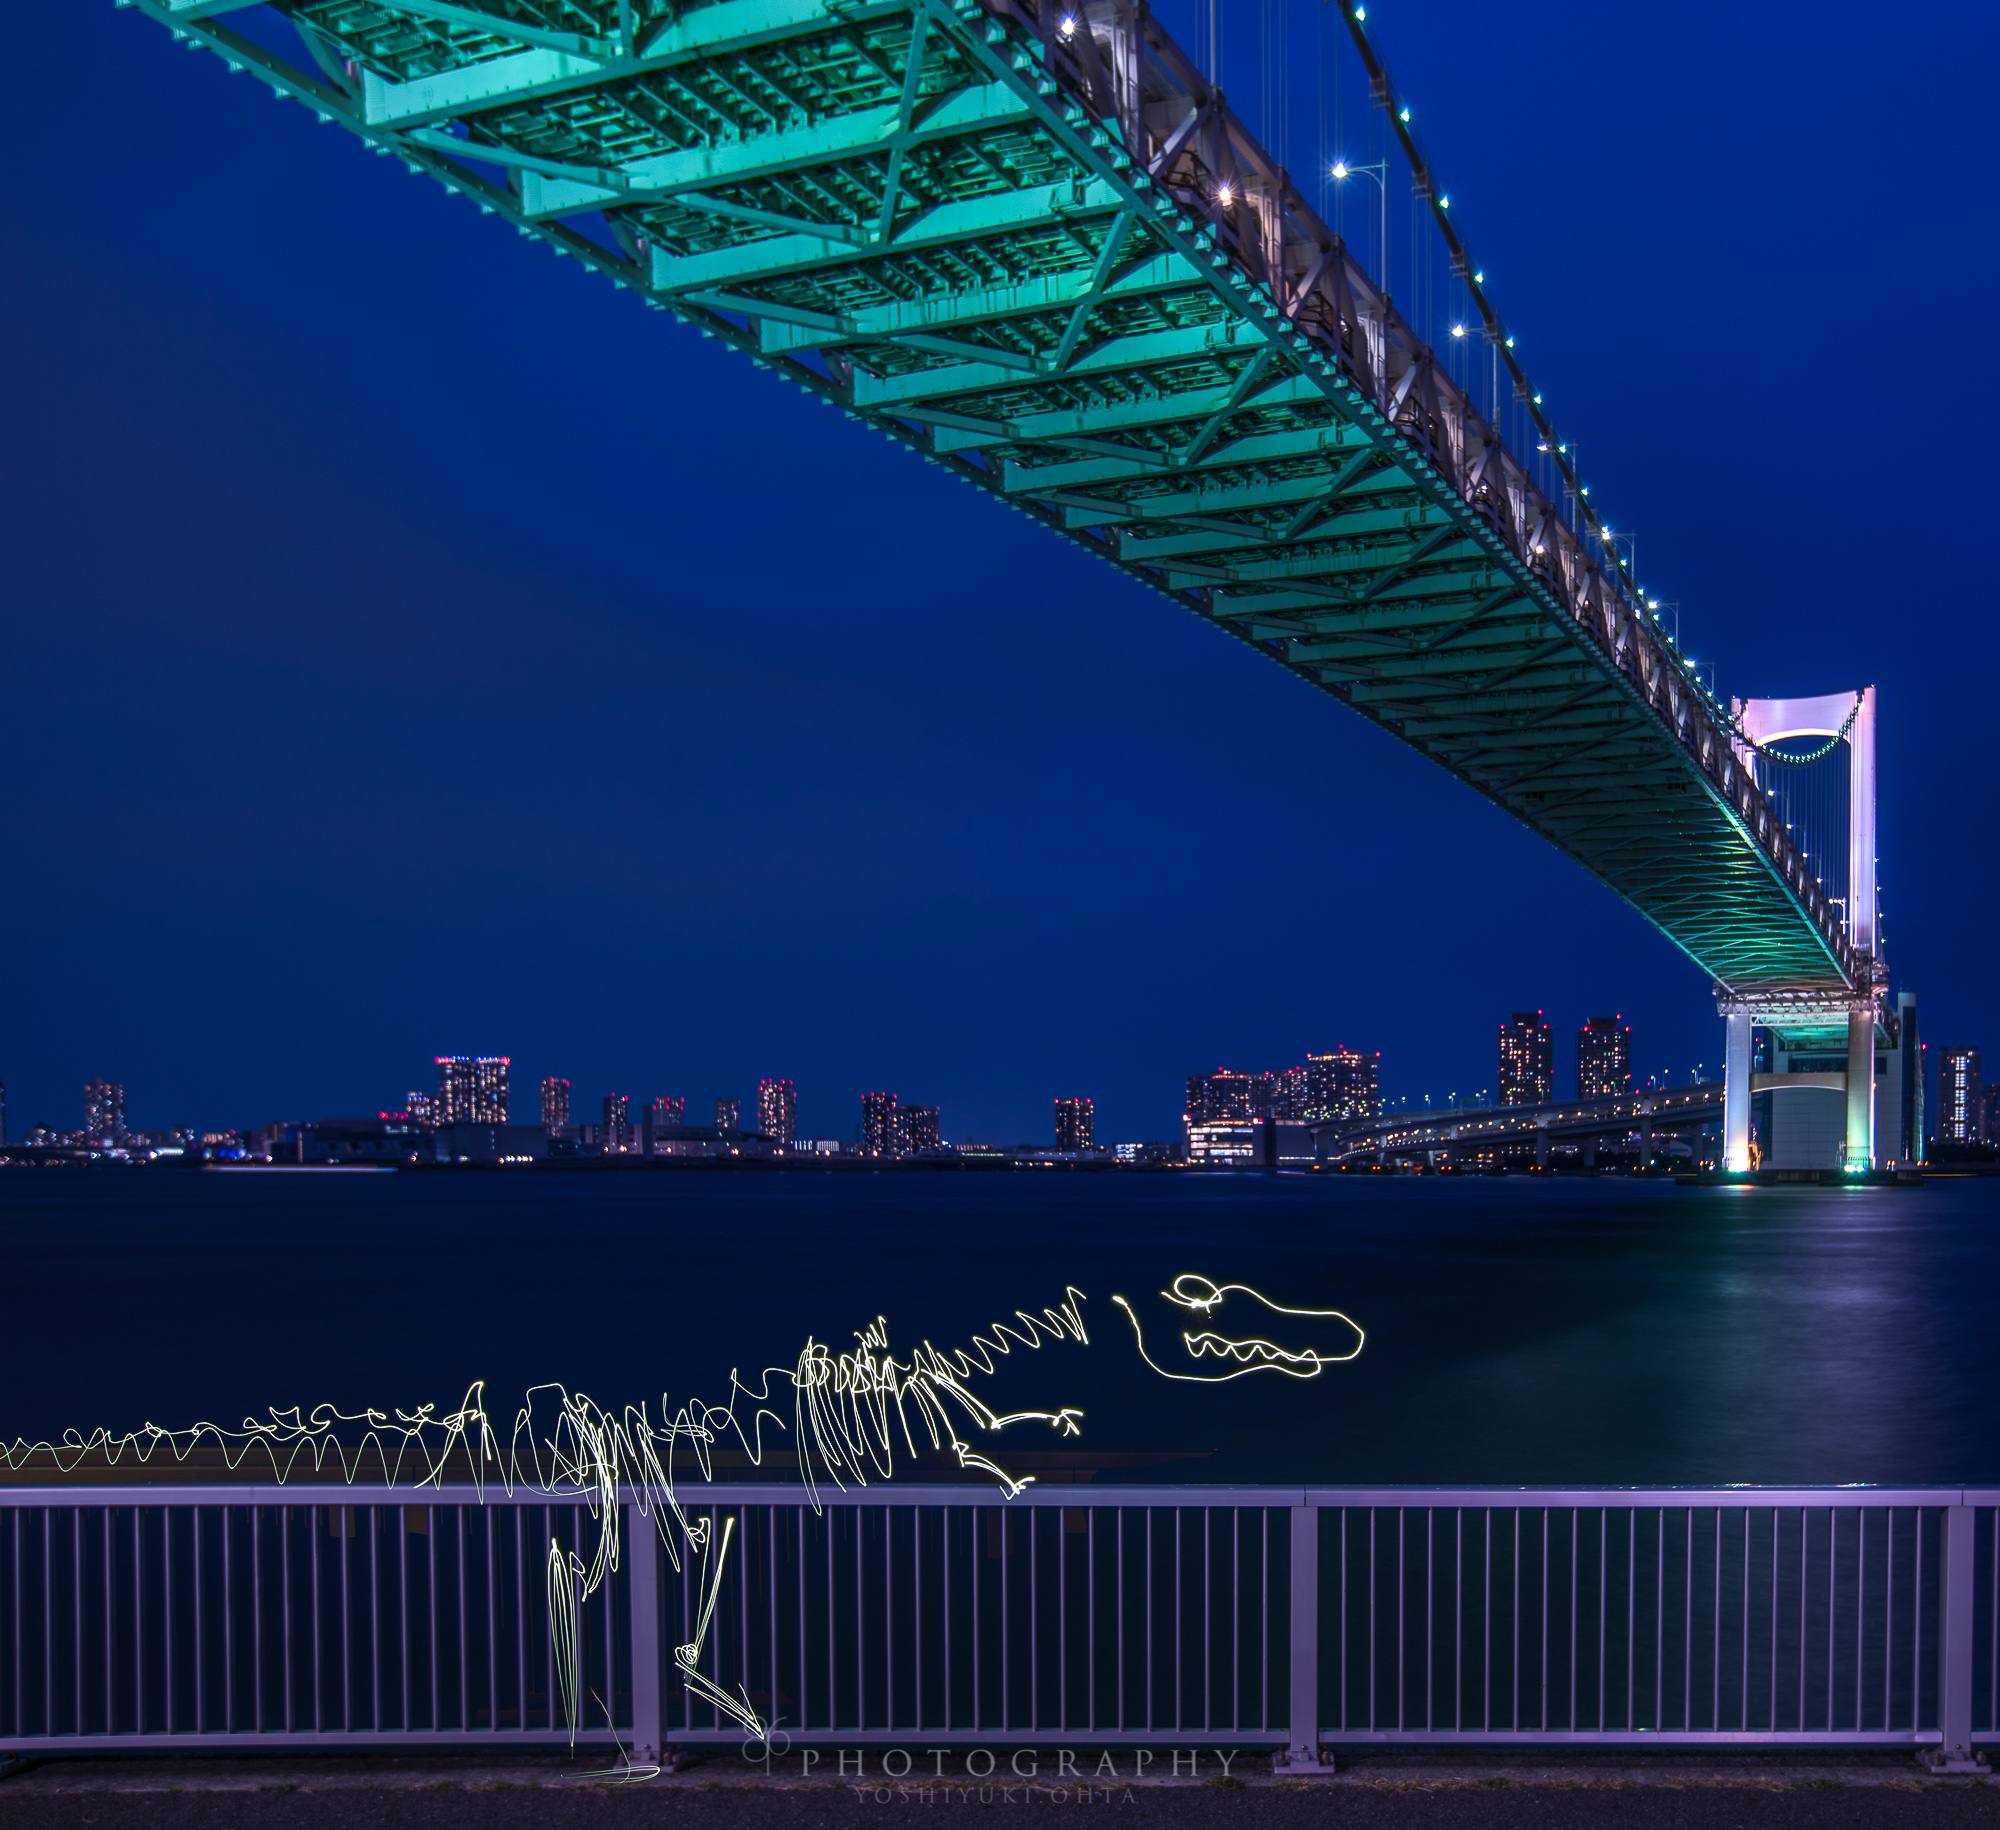 dinosaur under the bridge